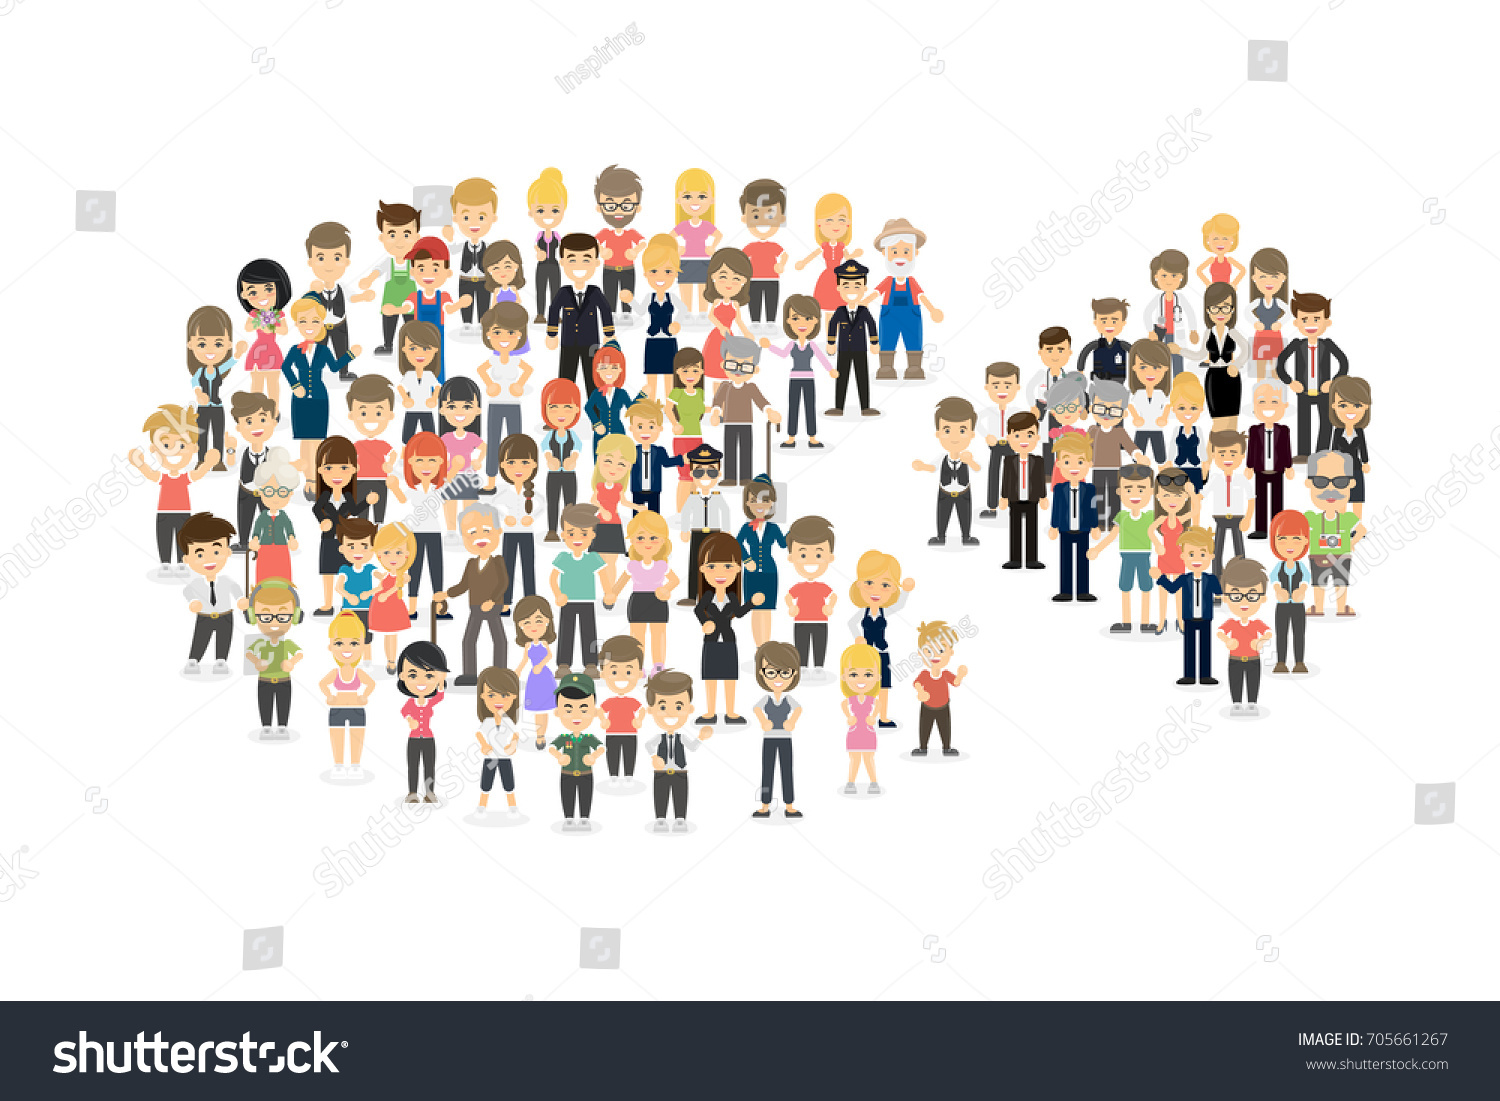 Pie chart people on white background stock illustration 705661267 pie chart with people on white background concept of demographic nvjuhfo Gallery